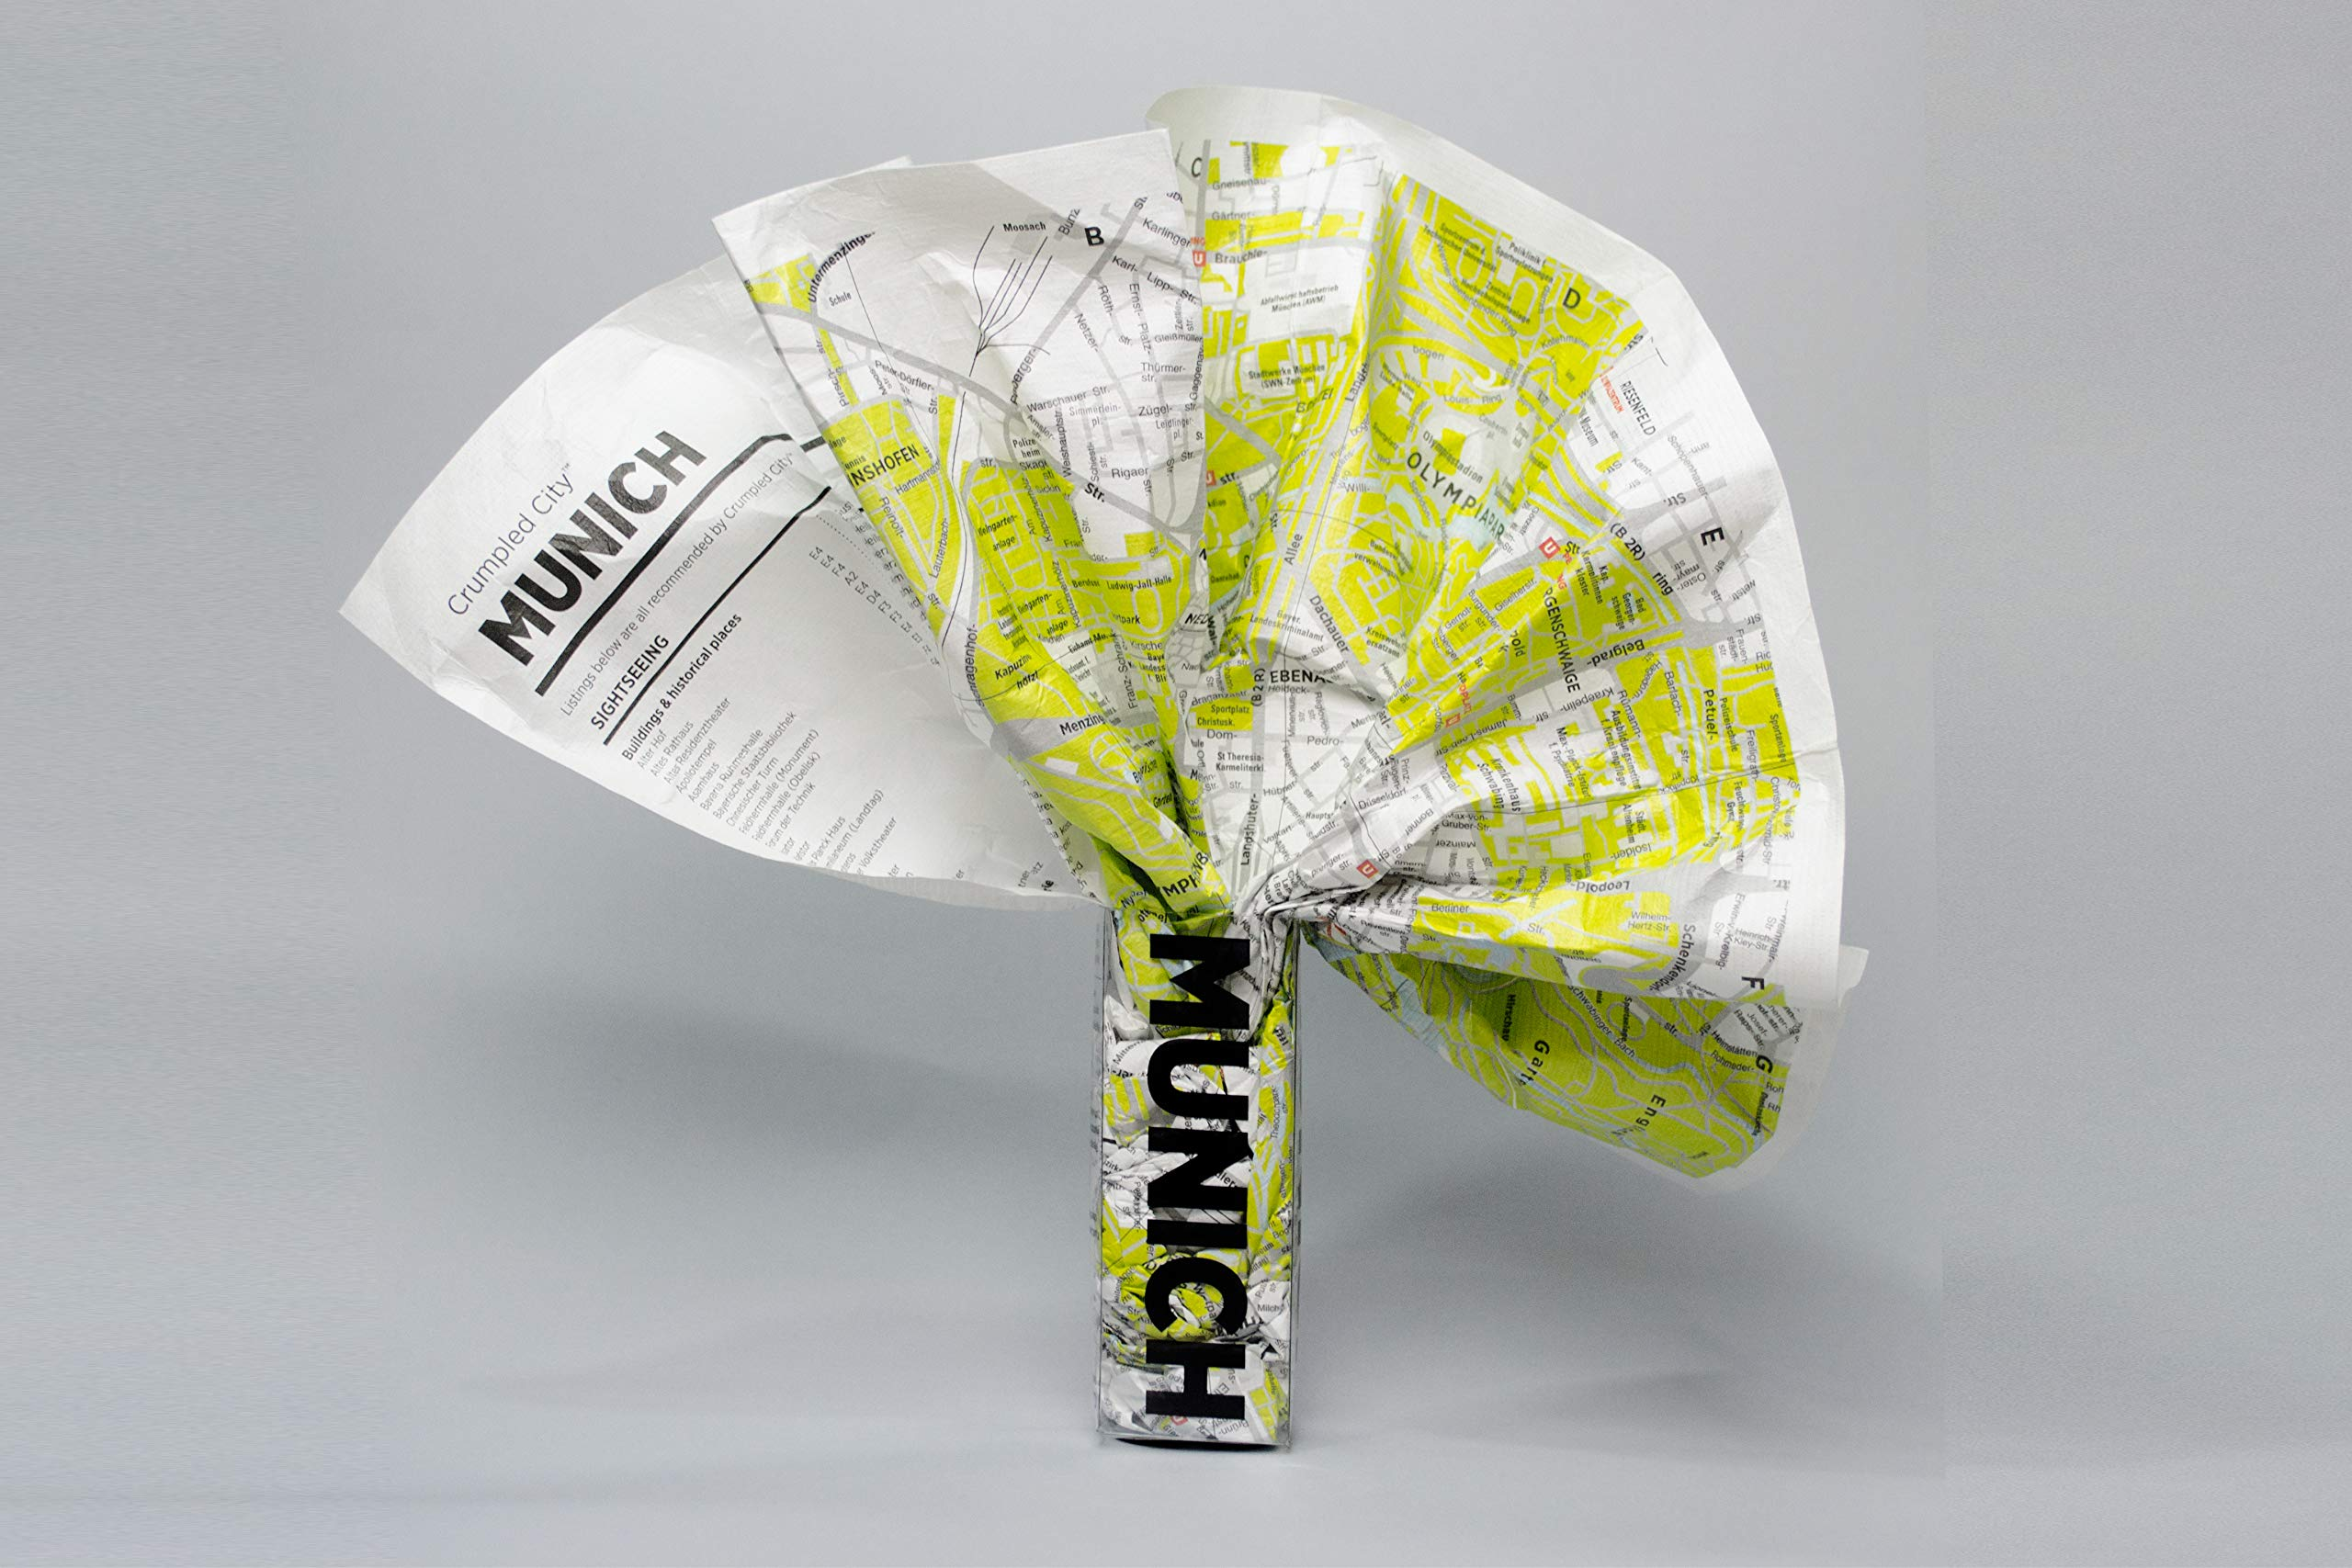 Crumpled City Map-Munich Map – January 1, 2011